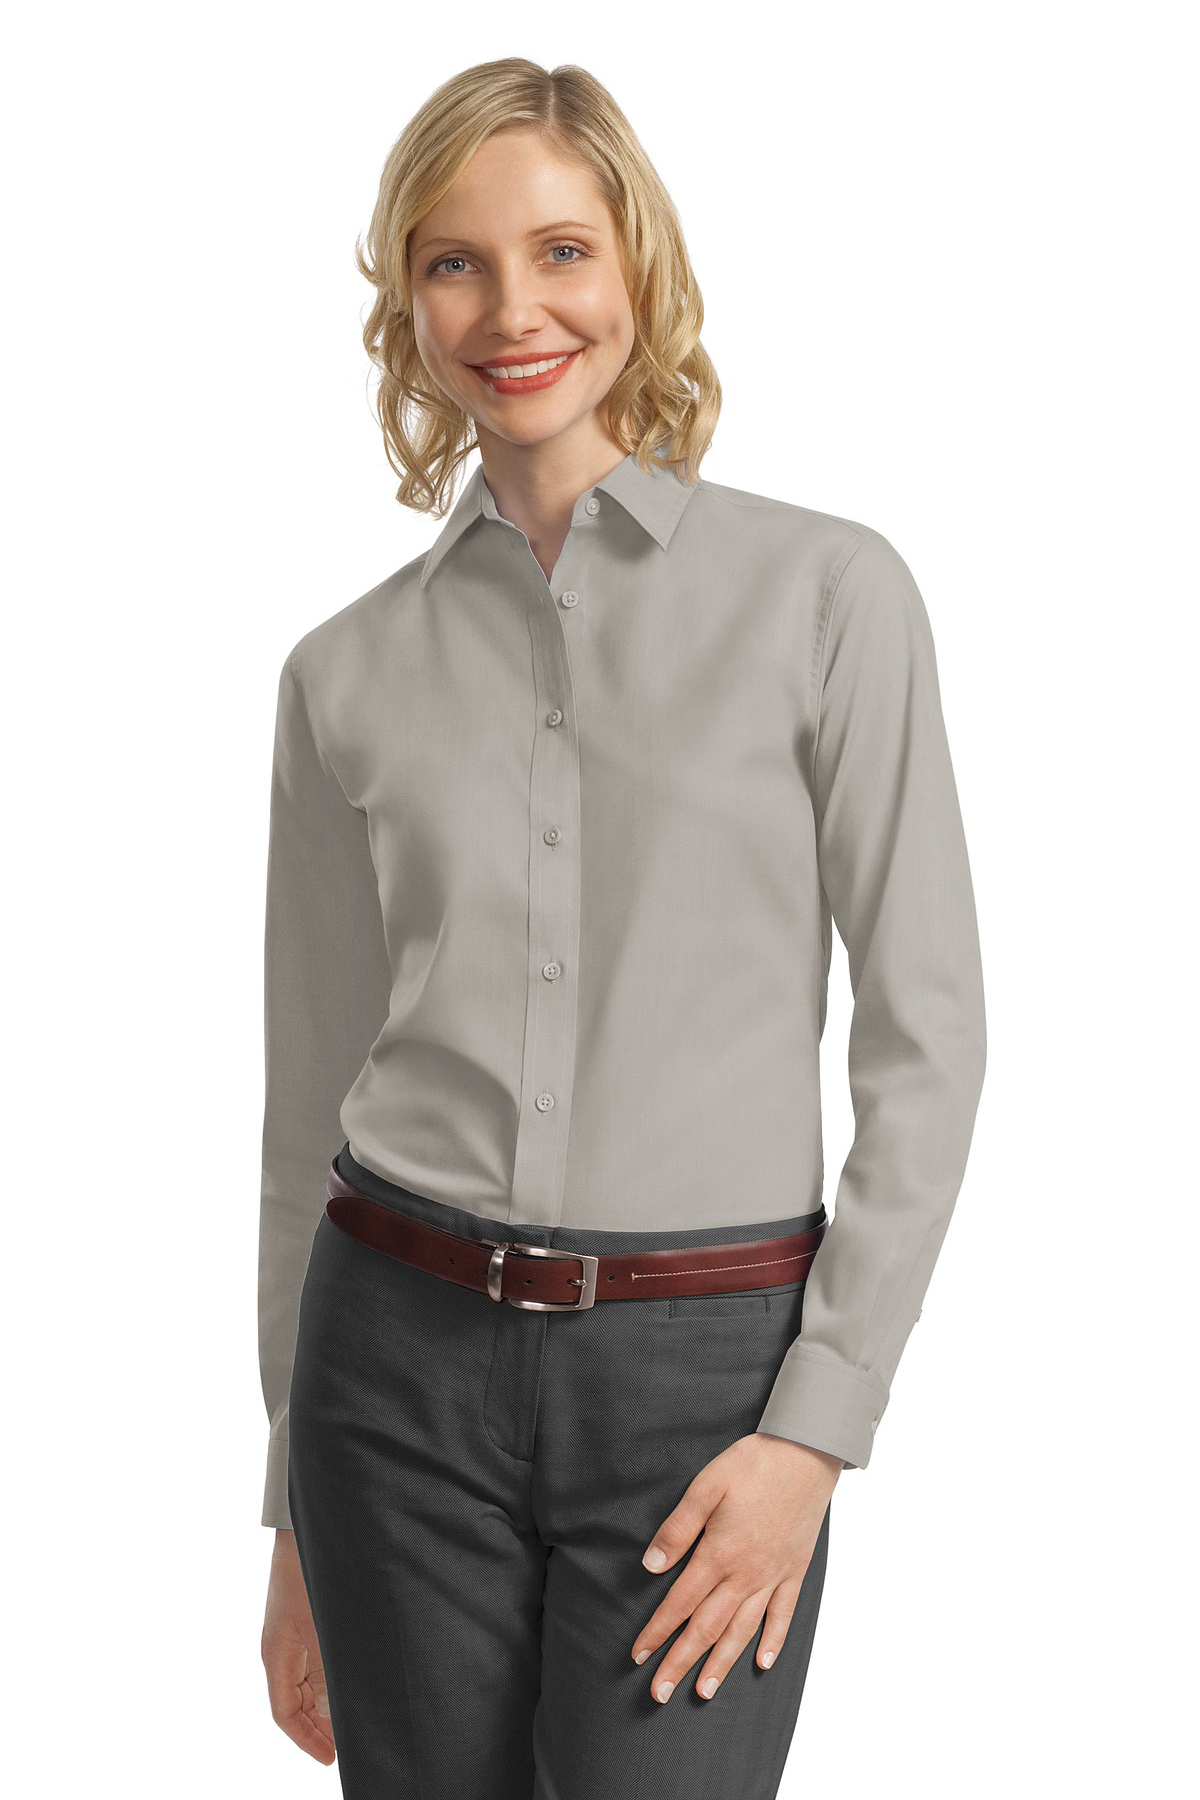 Woven-Shirts-Easy-Care-11